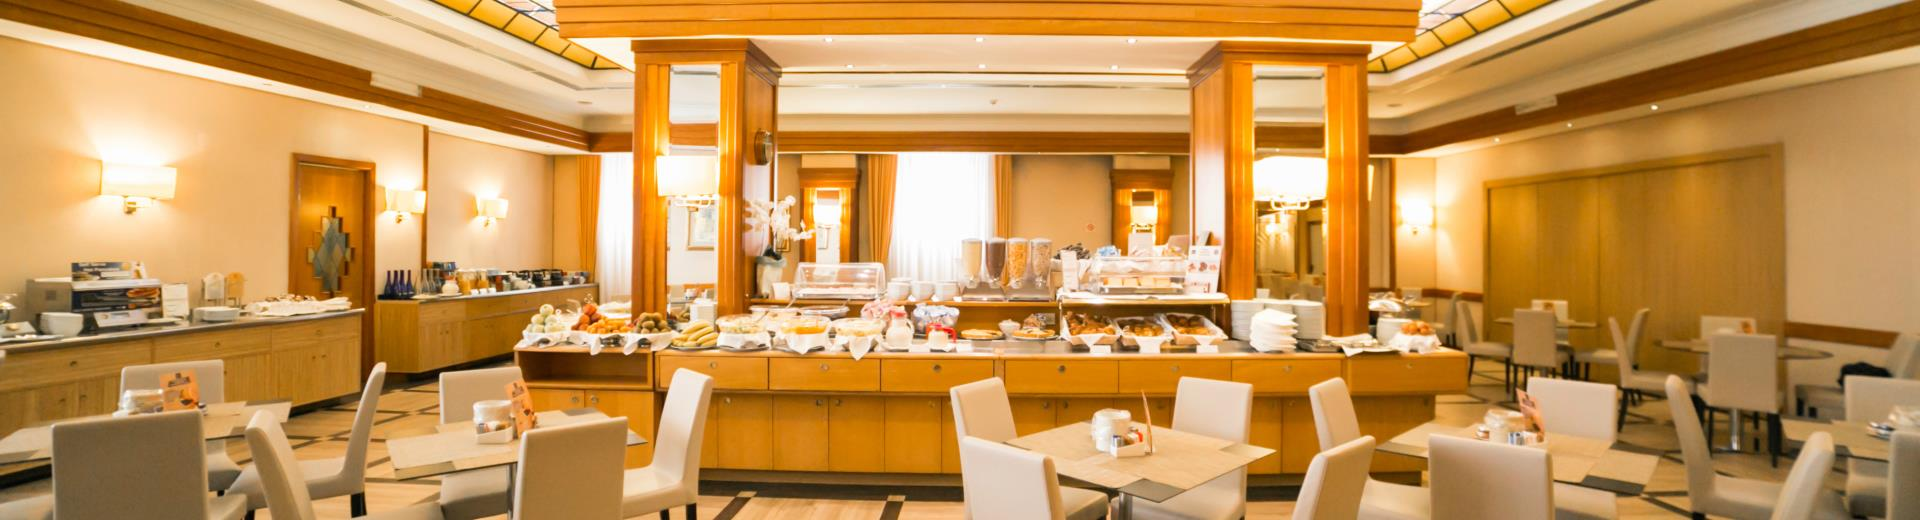 Restaurants in Hotel Roscioli 4 star hotel Rome